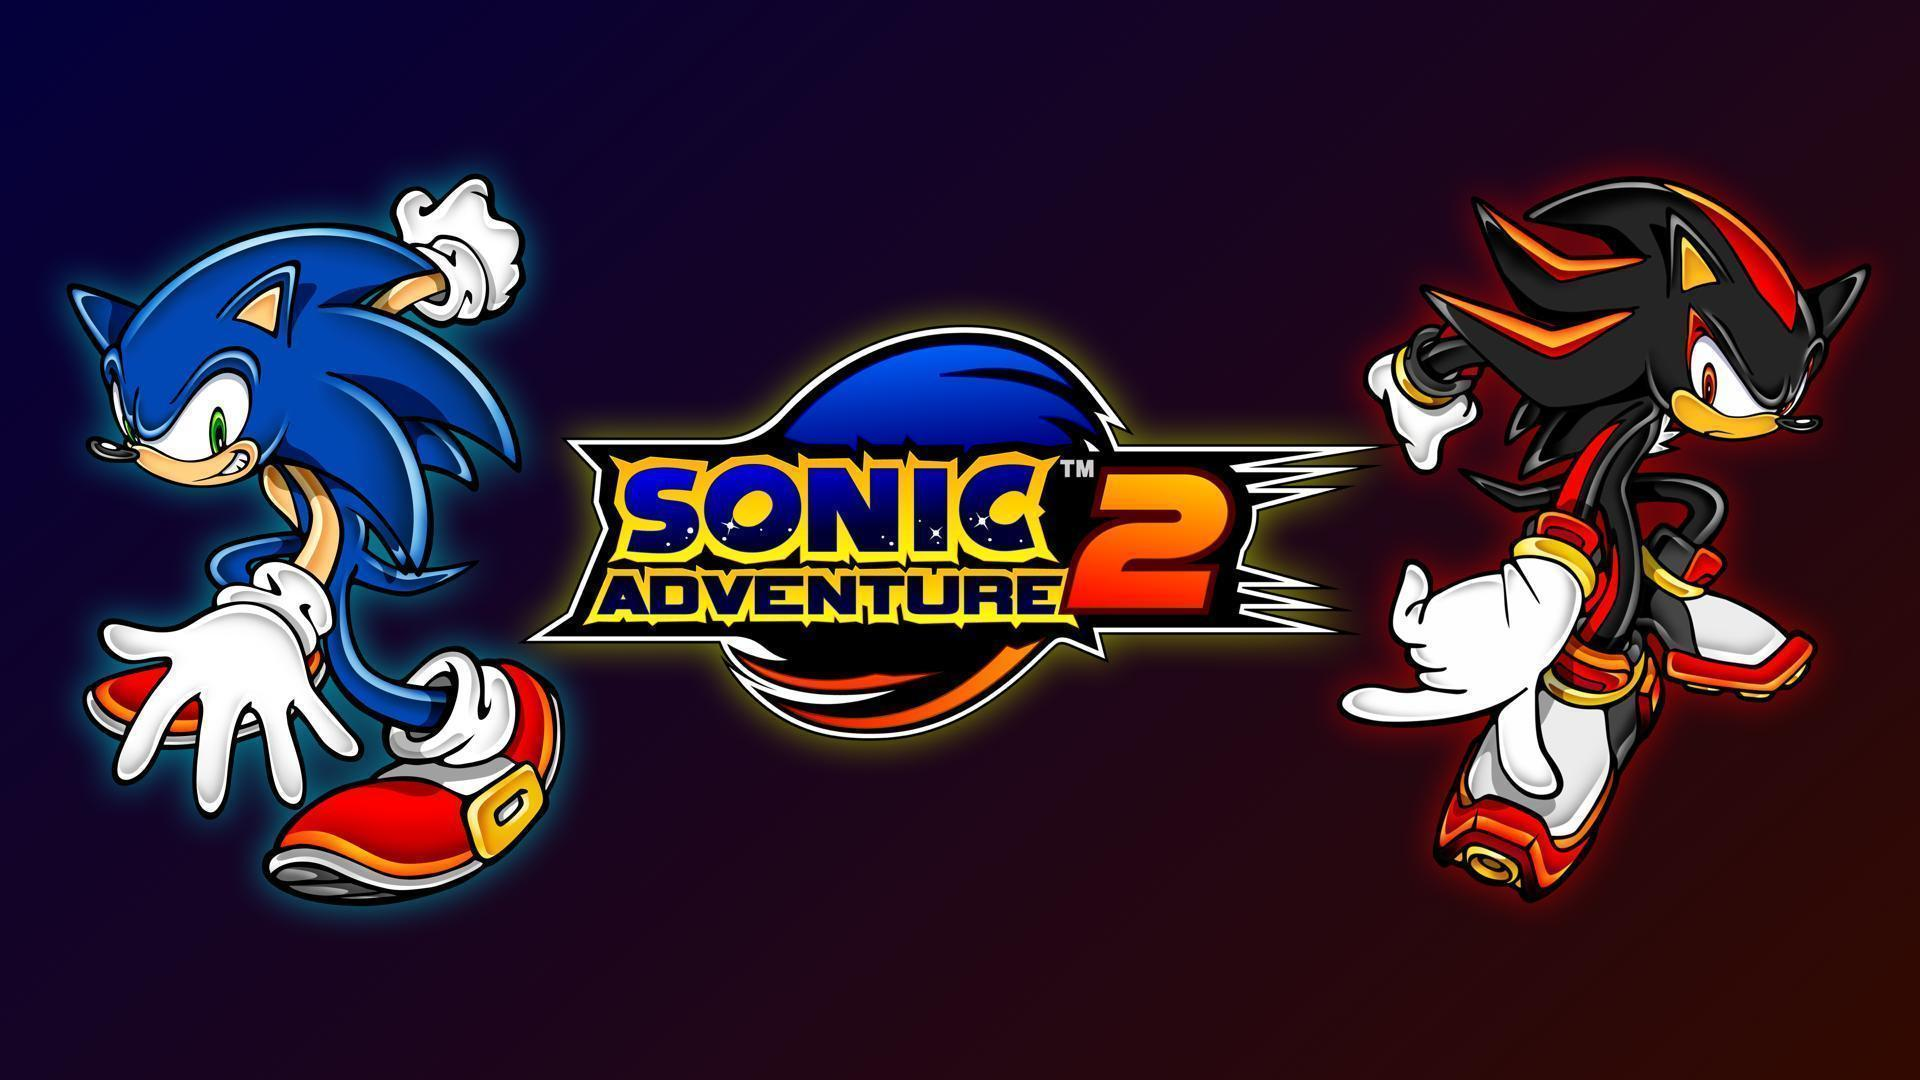 Sonic Adventure 2 Wallpapers Wallpaper Cave